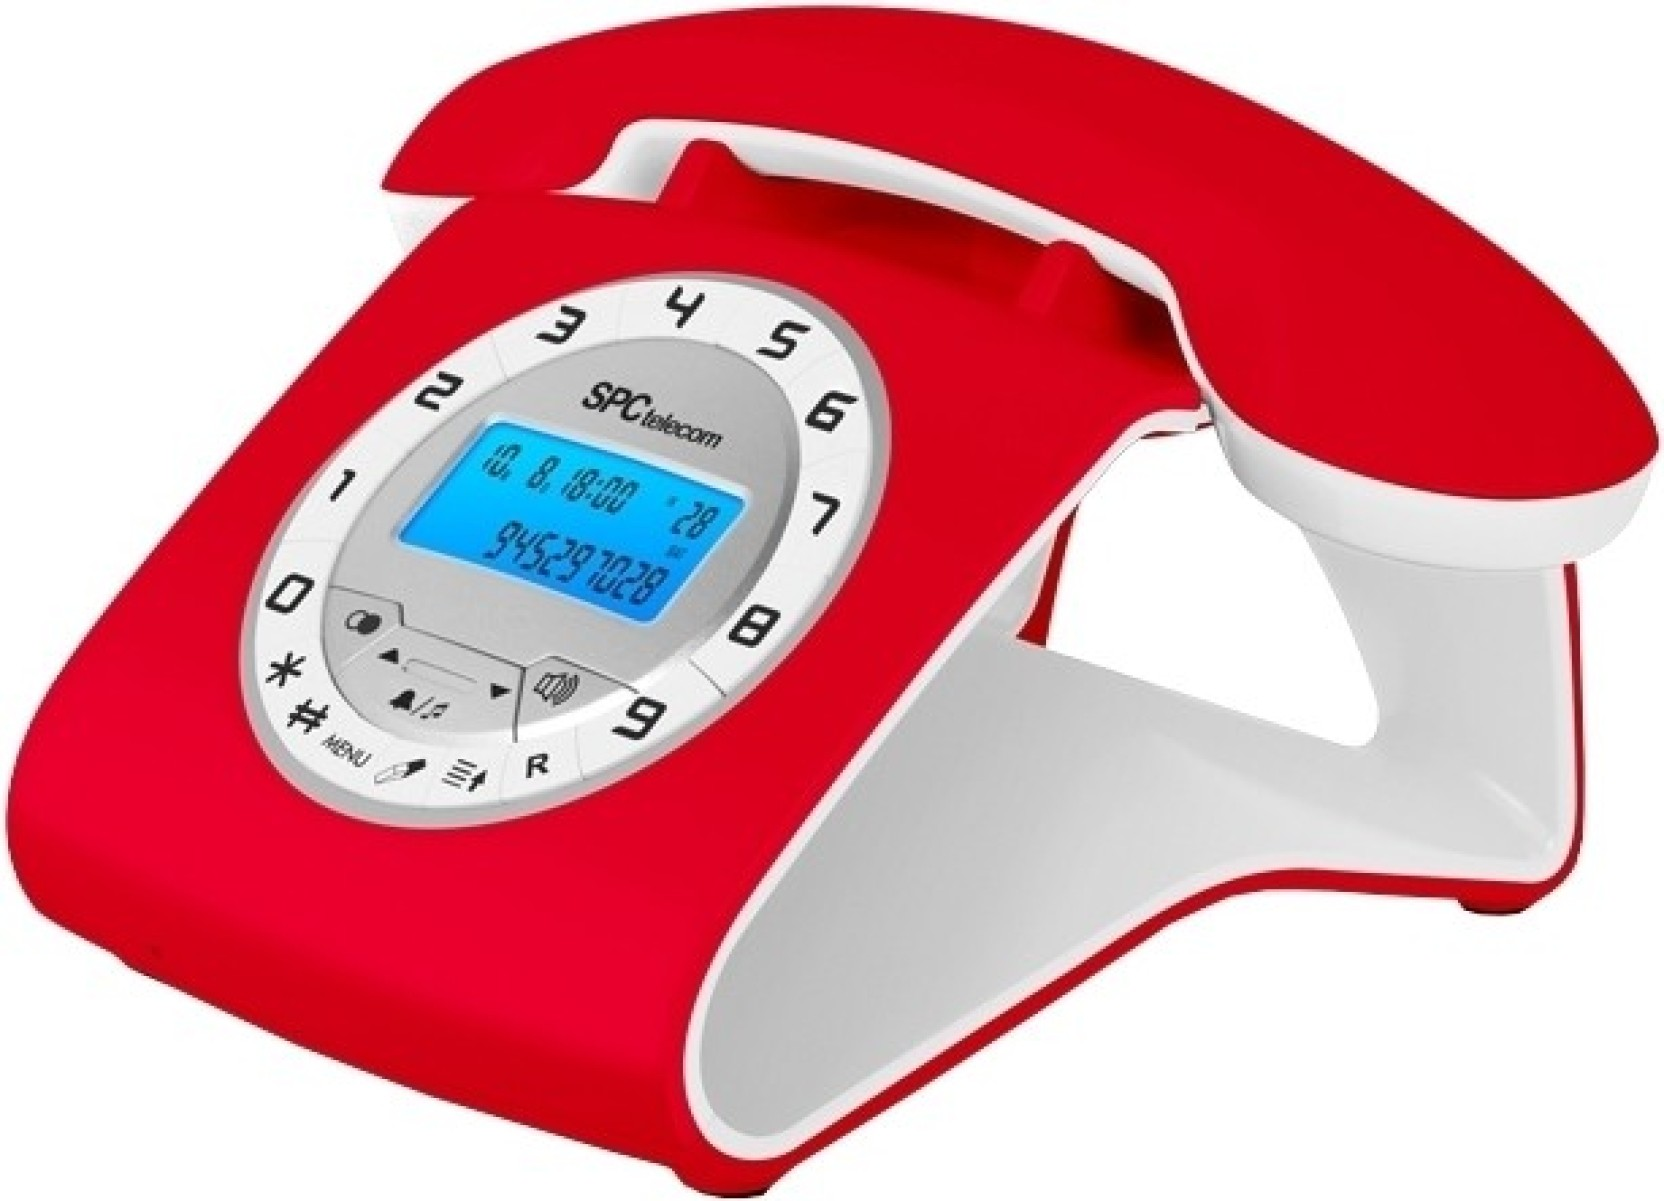 Spctelecom 3606r retro elegance corded landline phone price in india buy spctelecom 3606r - Telefono fisso design ...